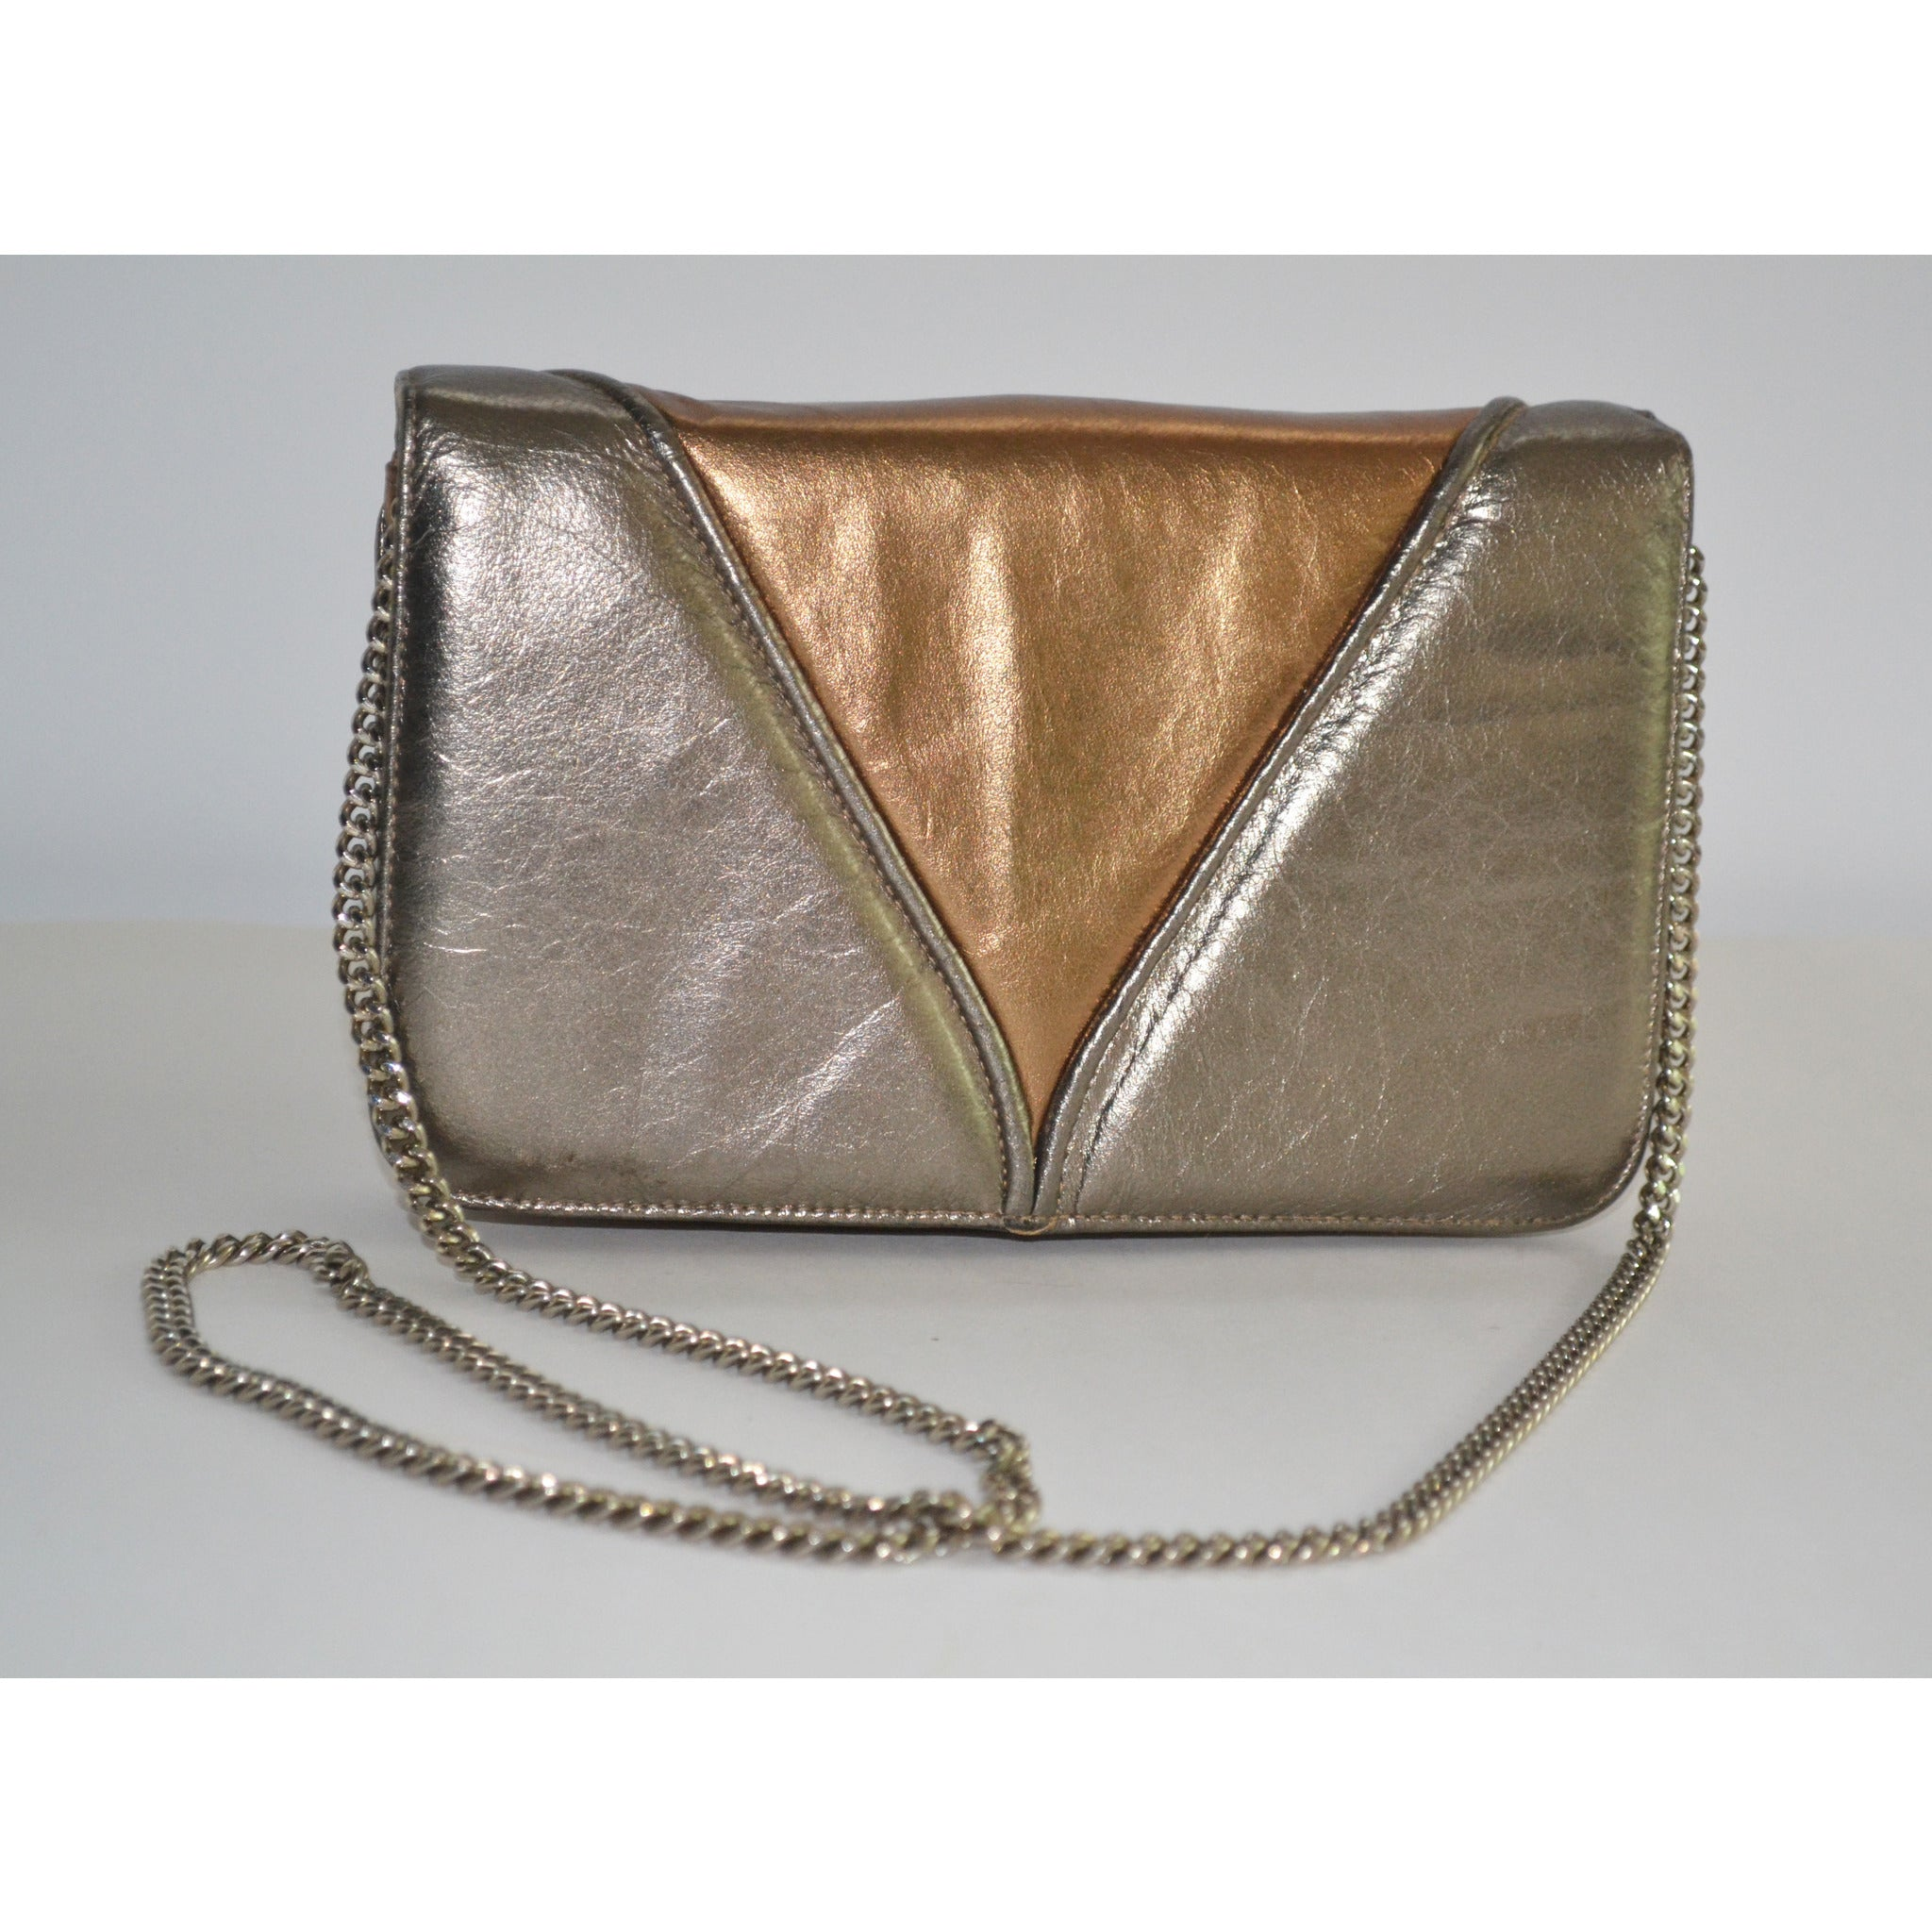 Vintage Gold Metallic Leather Purse By Morle